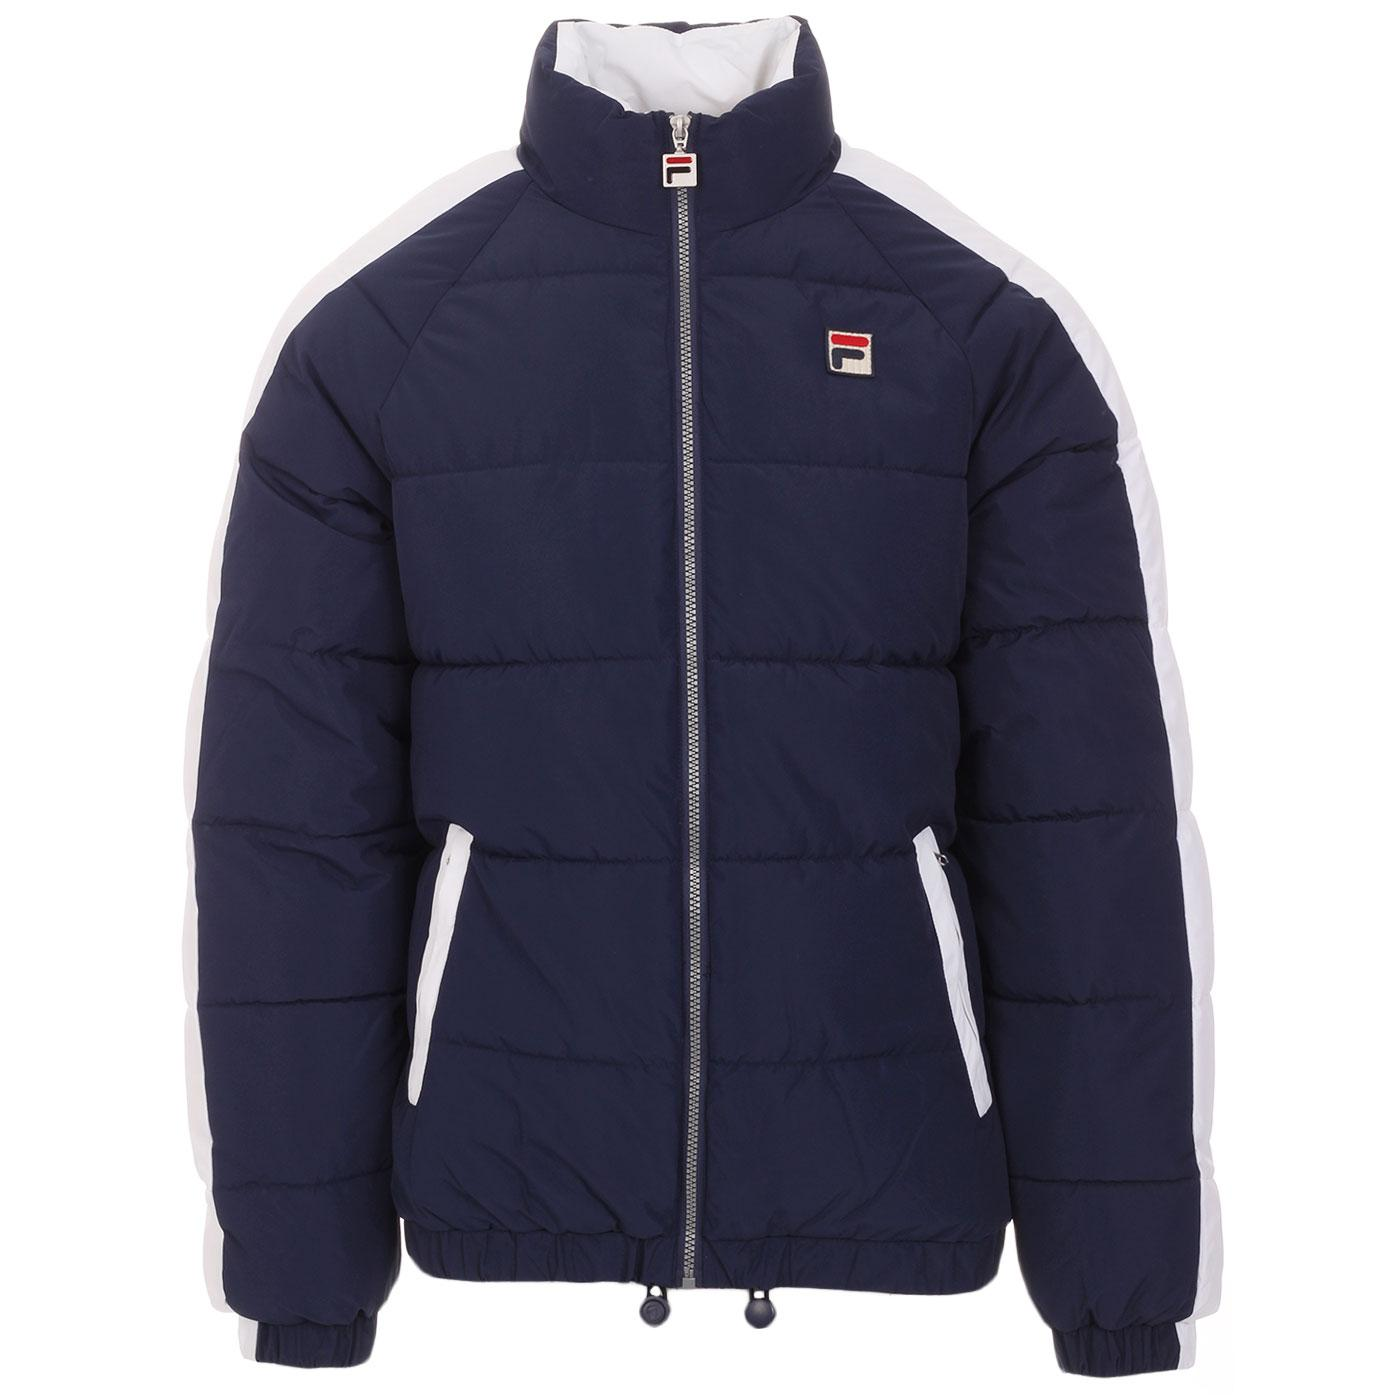 Ledger FILA VINTAGE Retro 1980s Quilted Jacket (P)